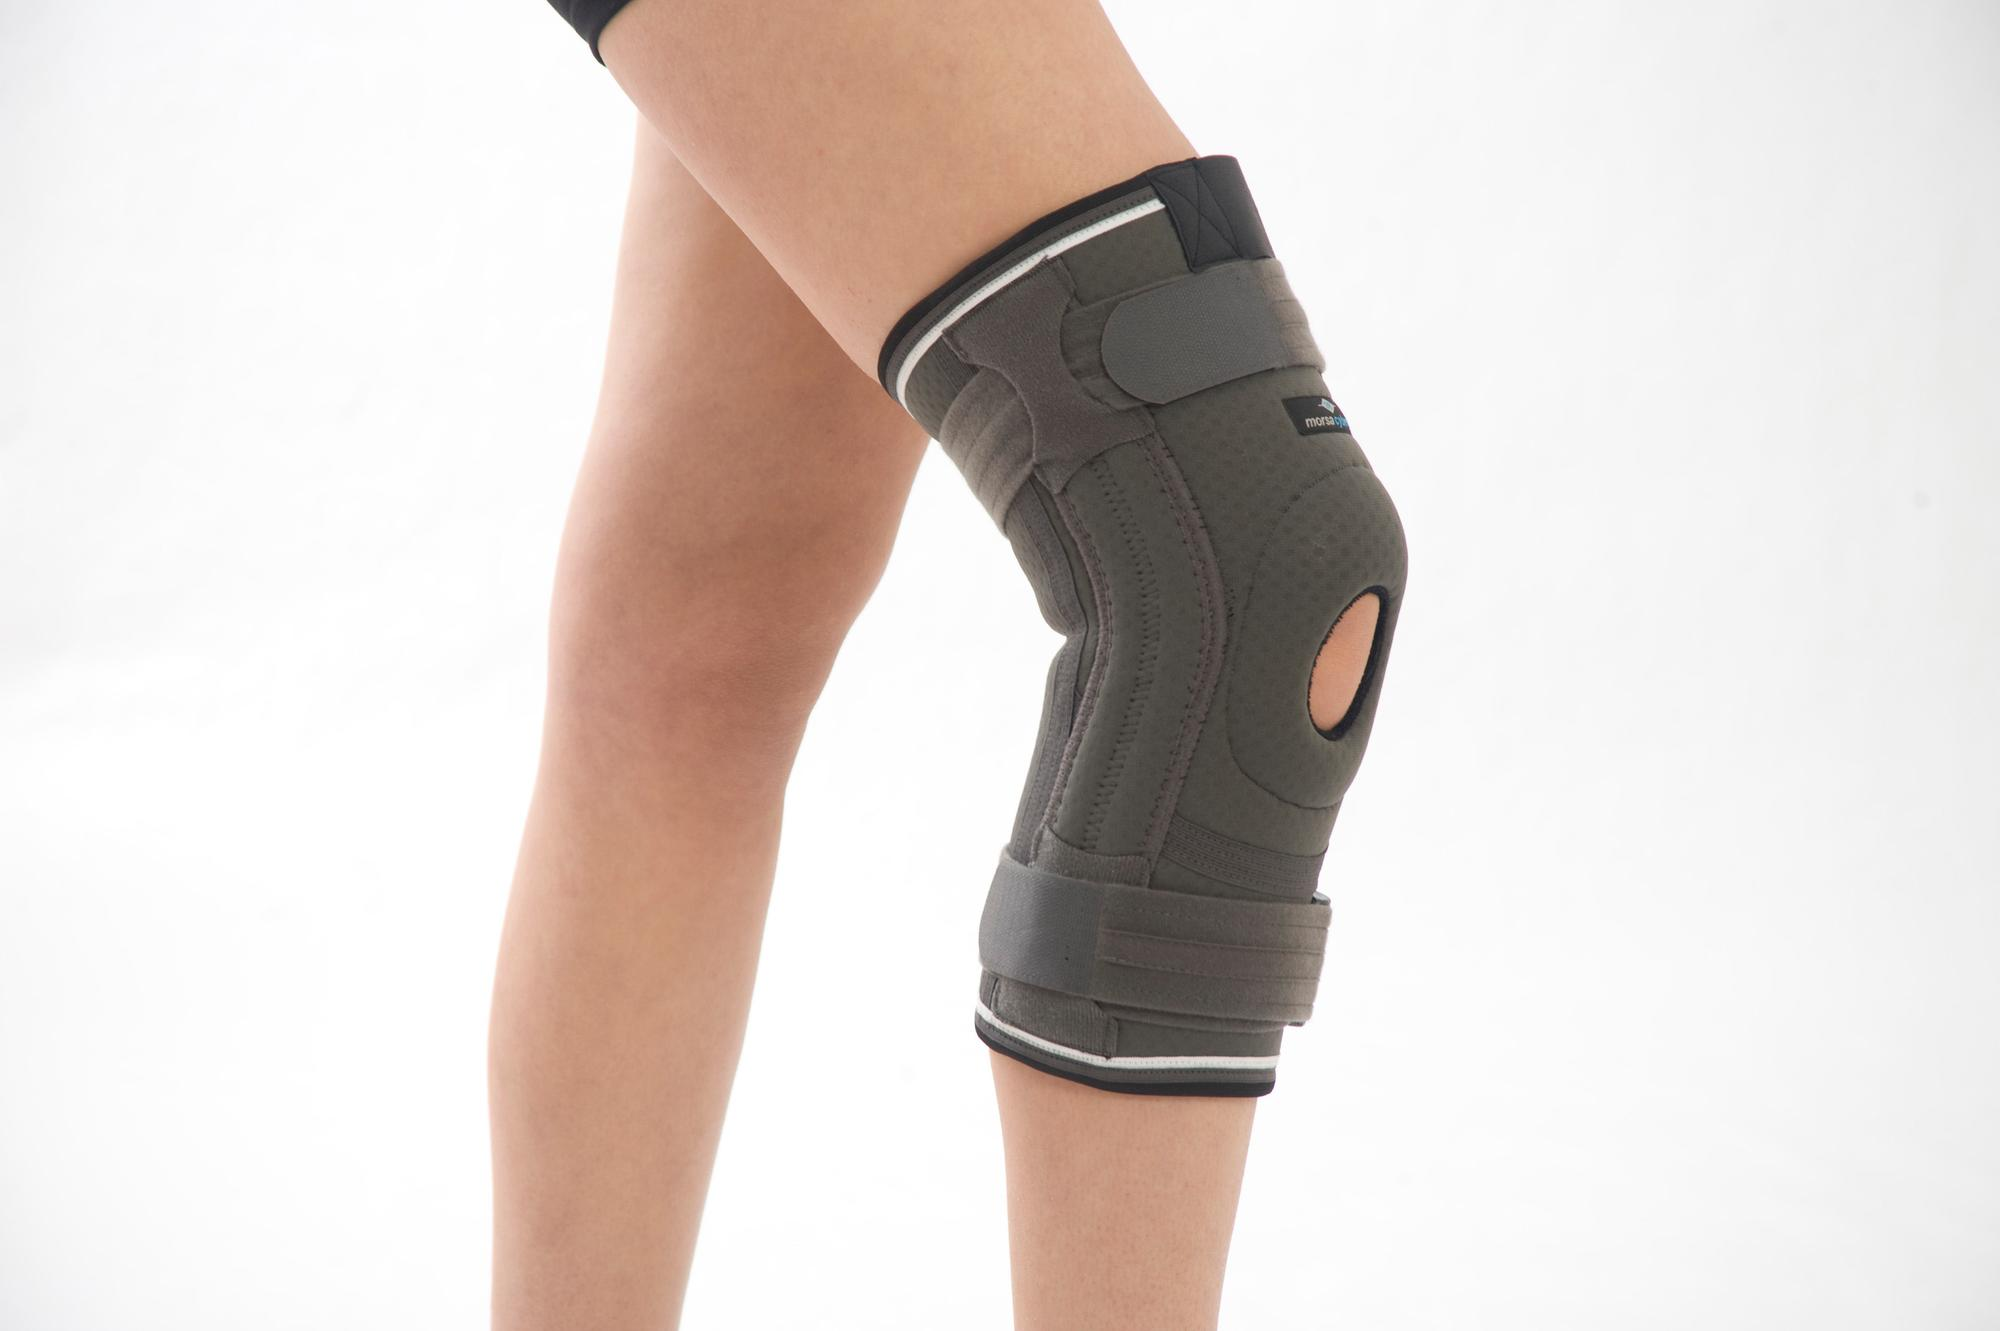 31e7b40175 Buy <Sports/orthopedic bandages> - Offer: <20% discount now!>,-